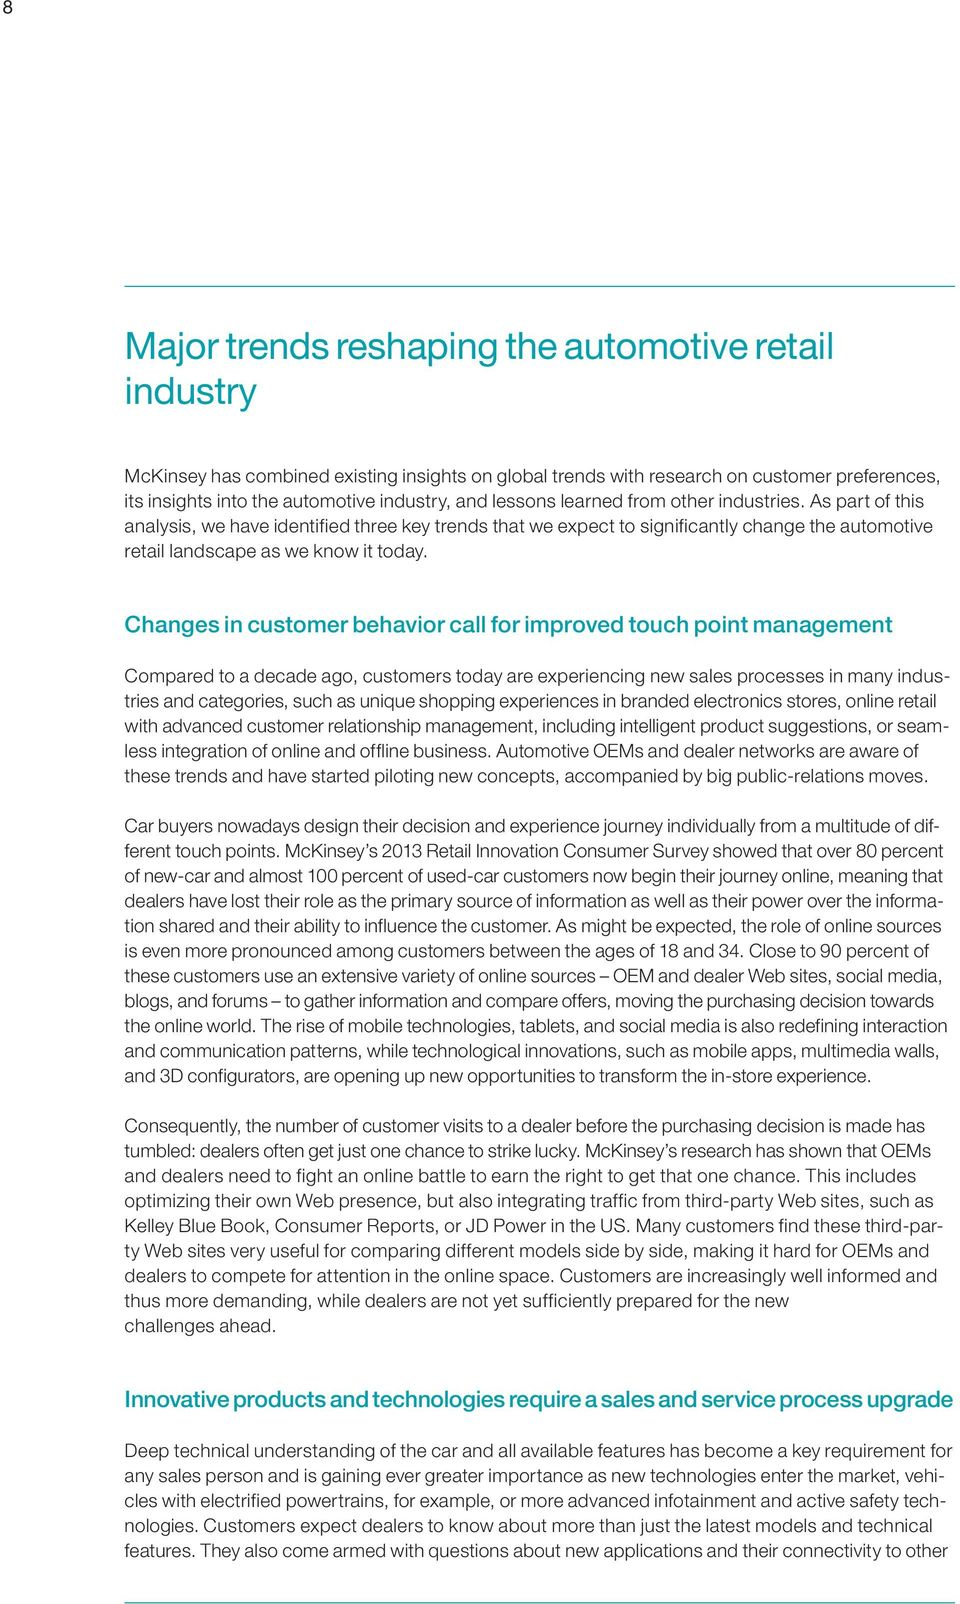 Changes in customer behavior call for improved touch point management Compared to a decade ago, customers today are experiencing new sales processes in many industries and categories, such as unique